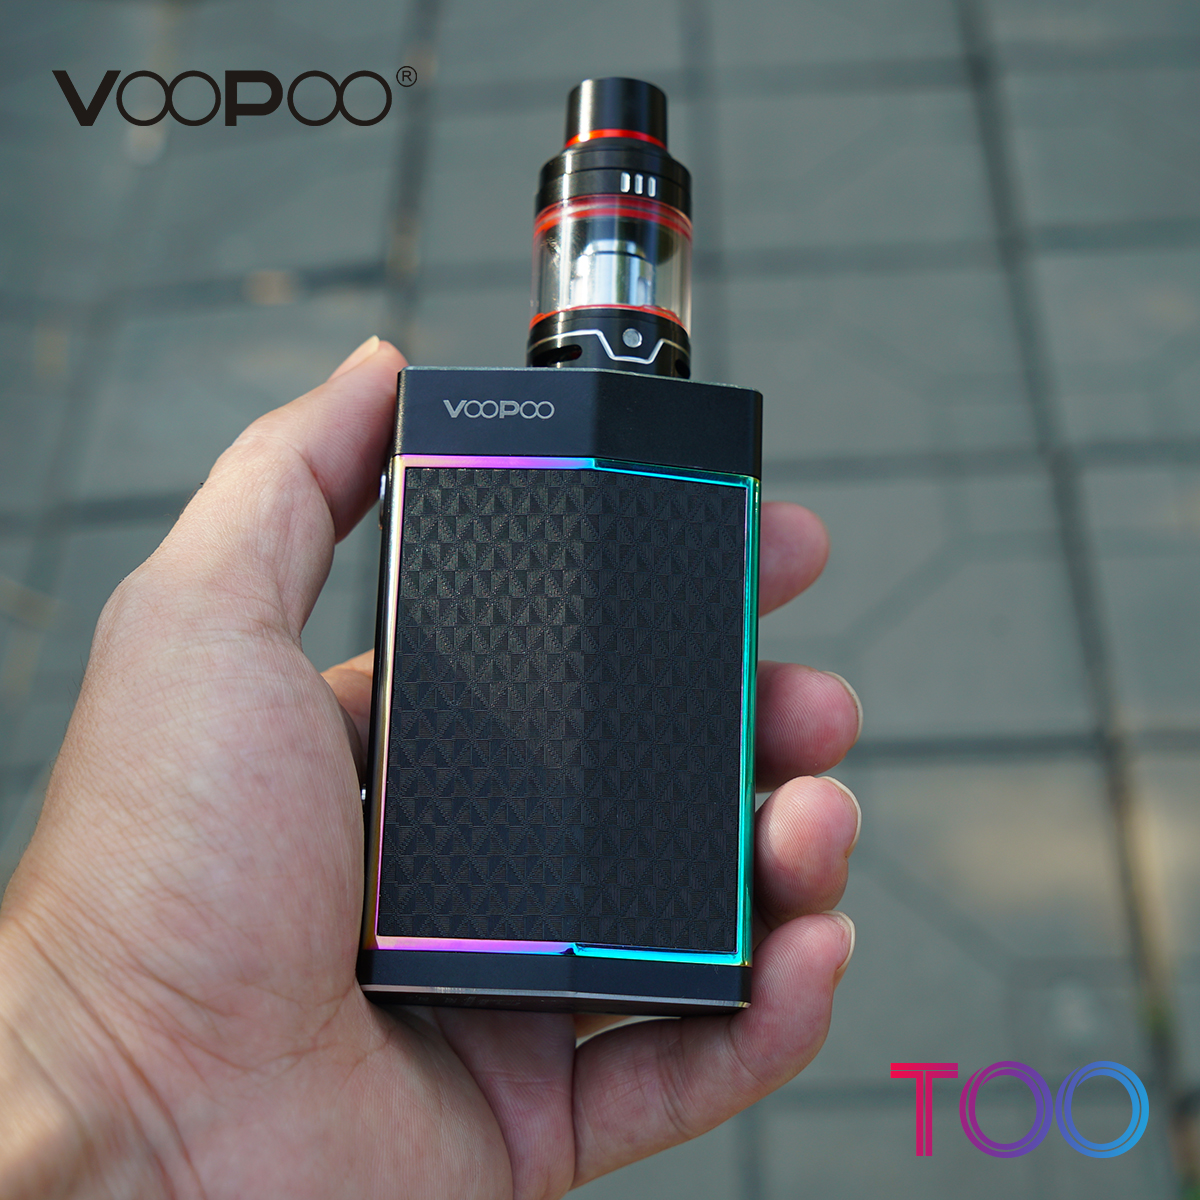 VOOPOO TOO 180W Kit